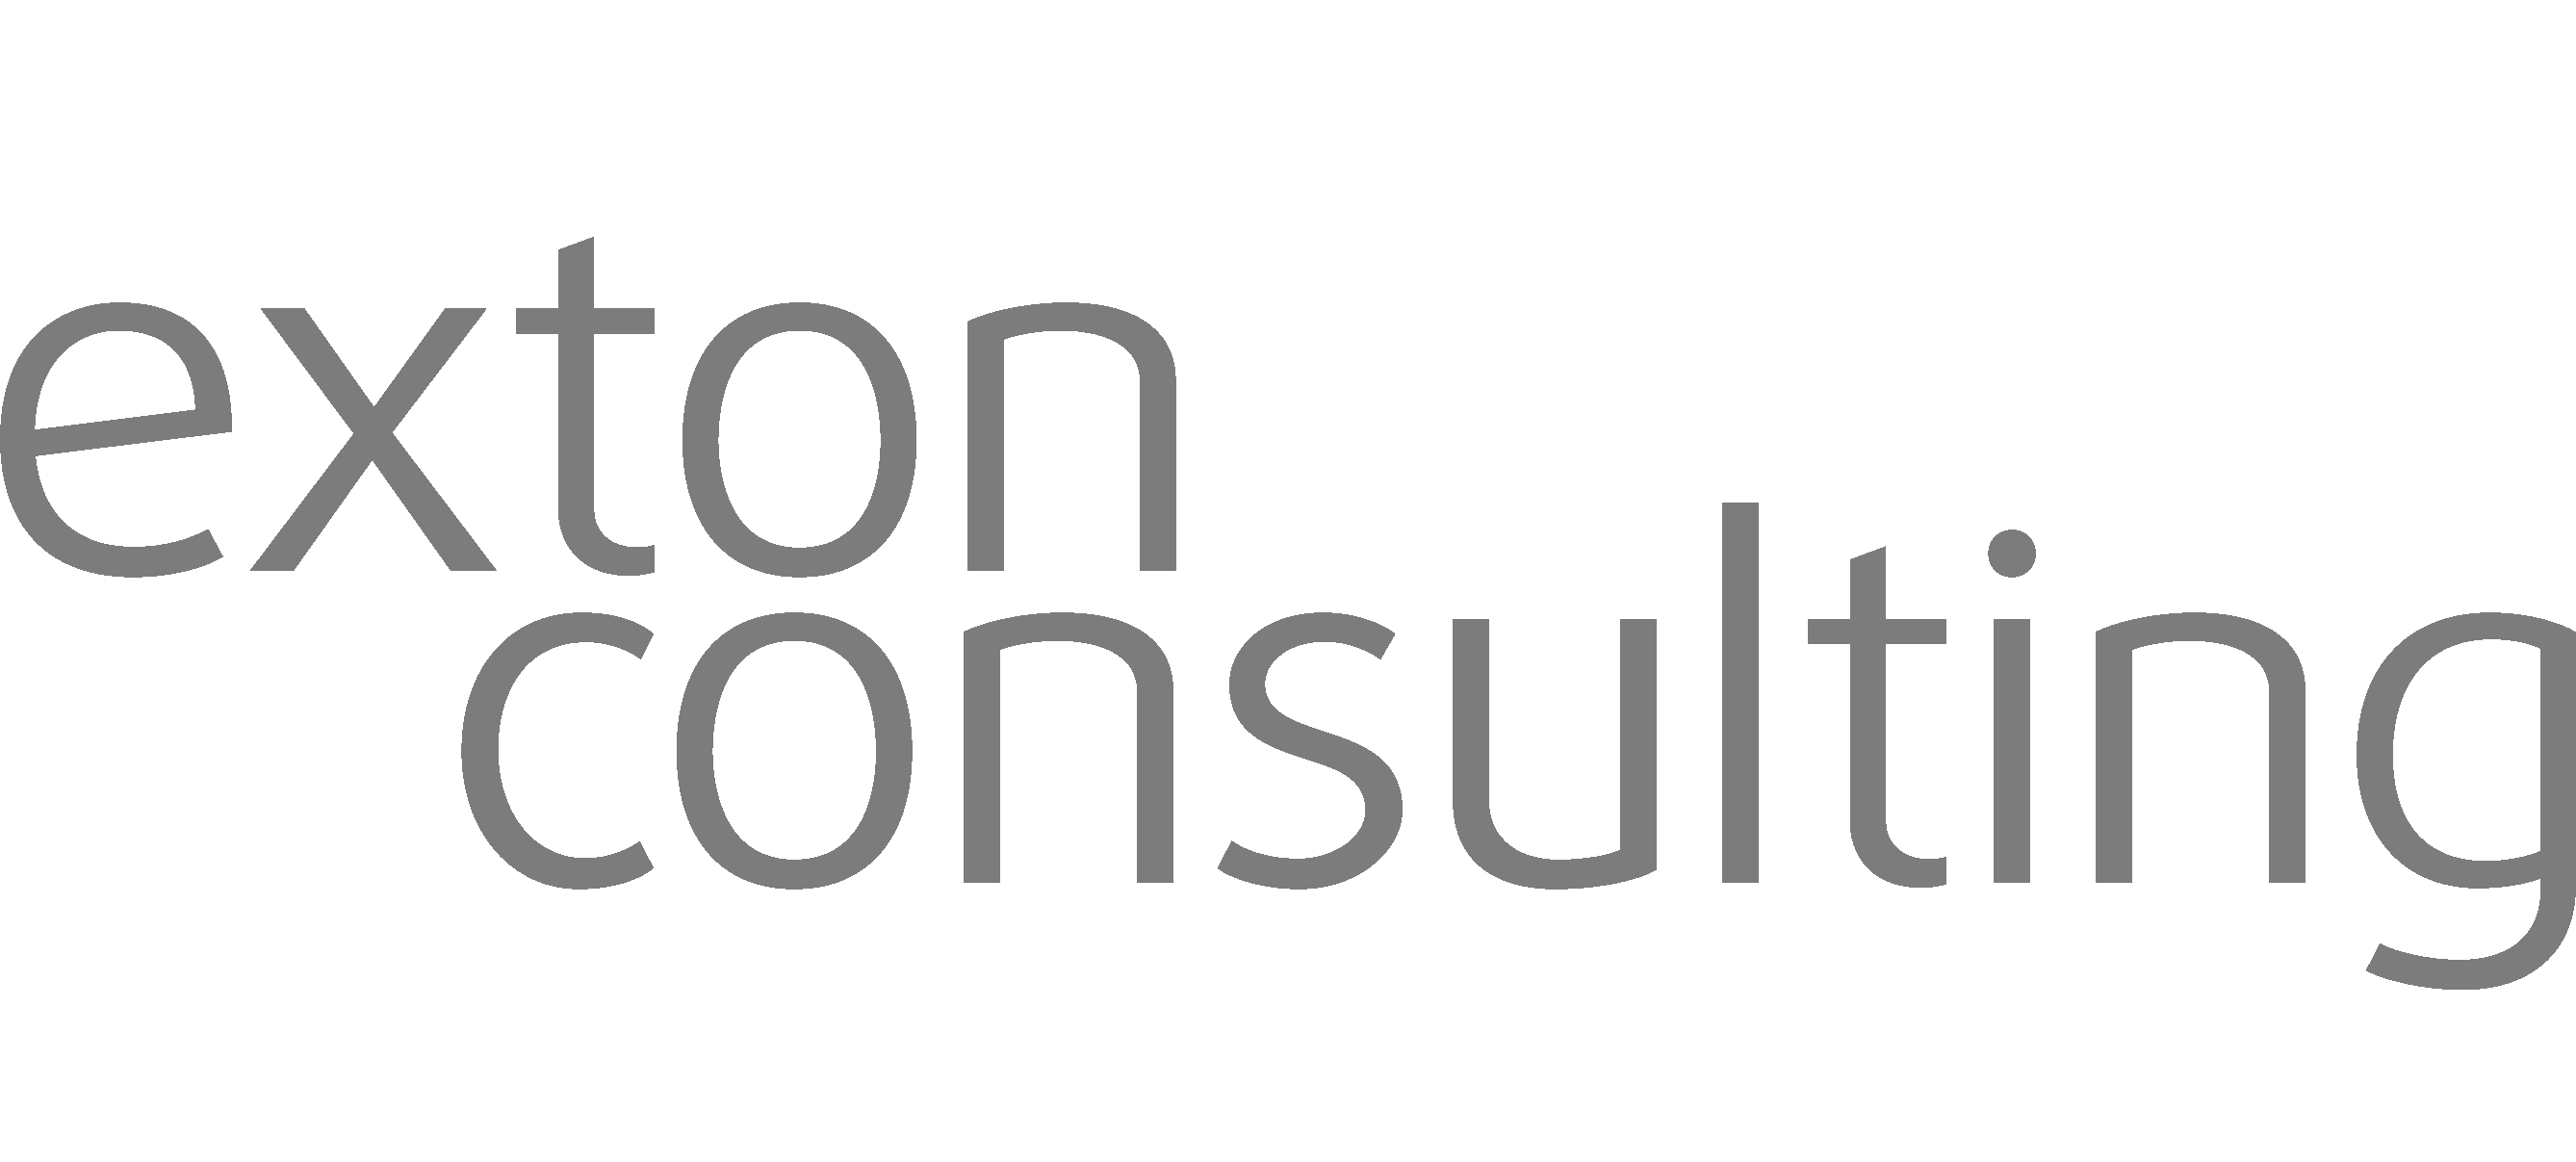 Exton Consulting